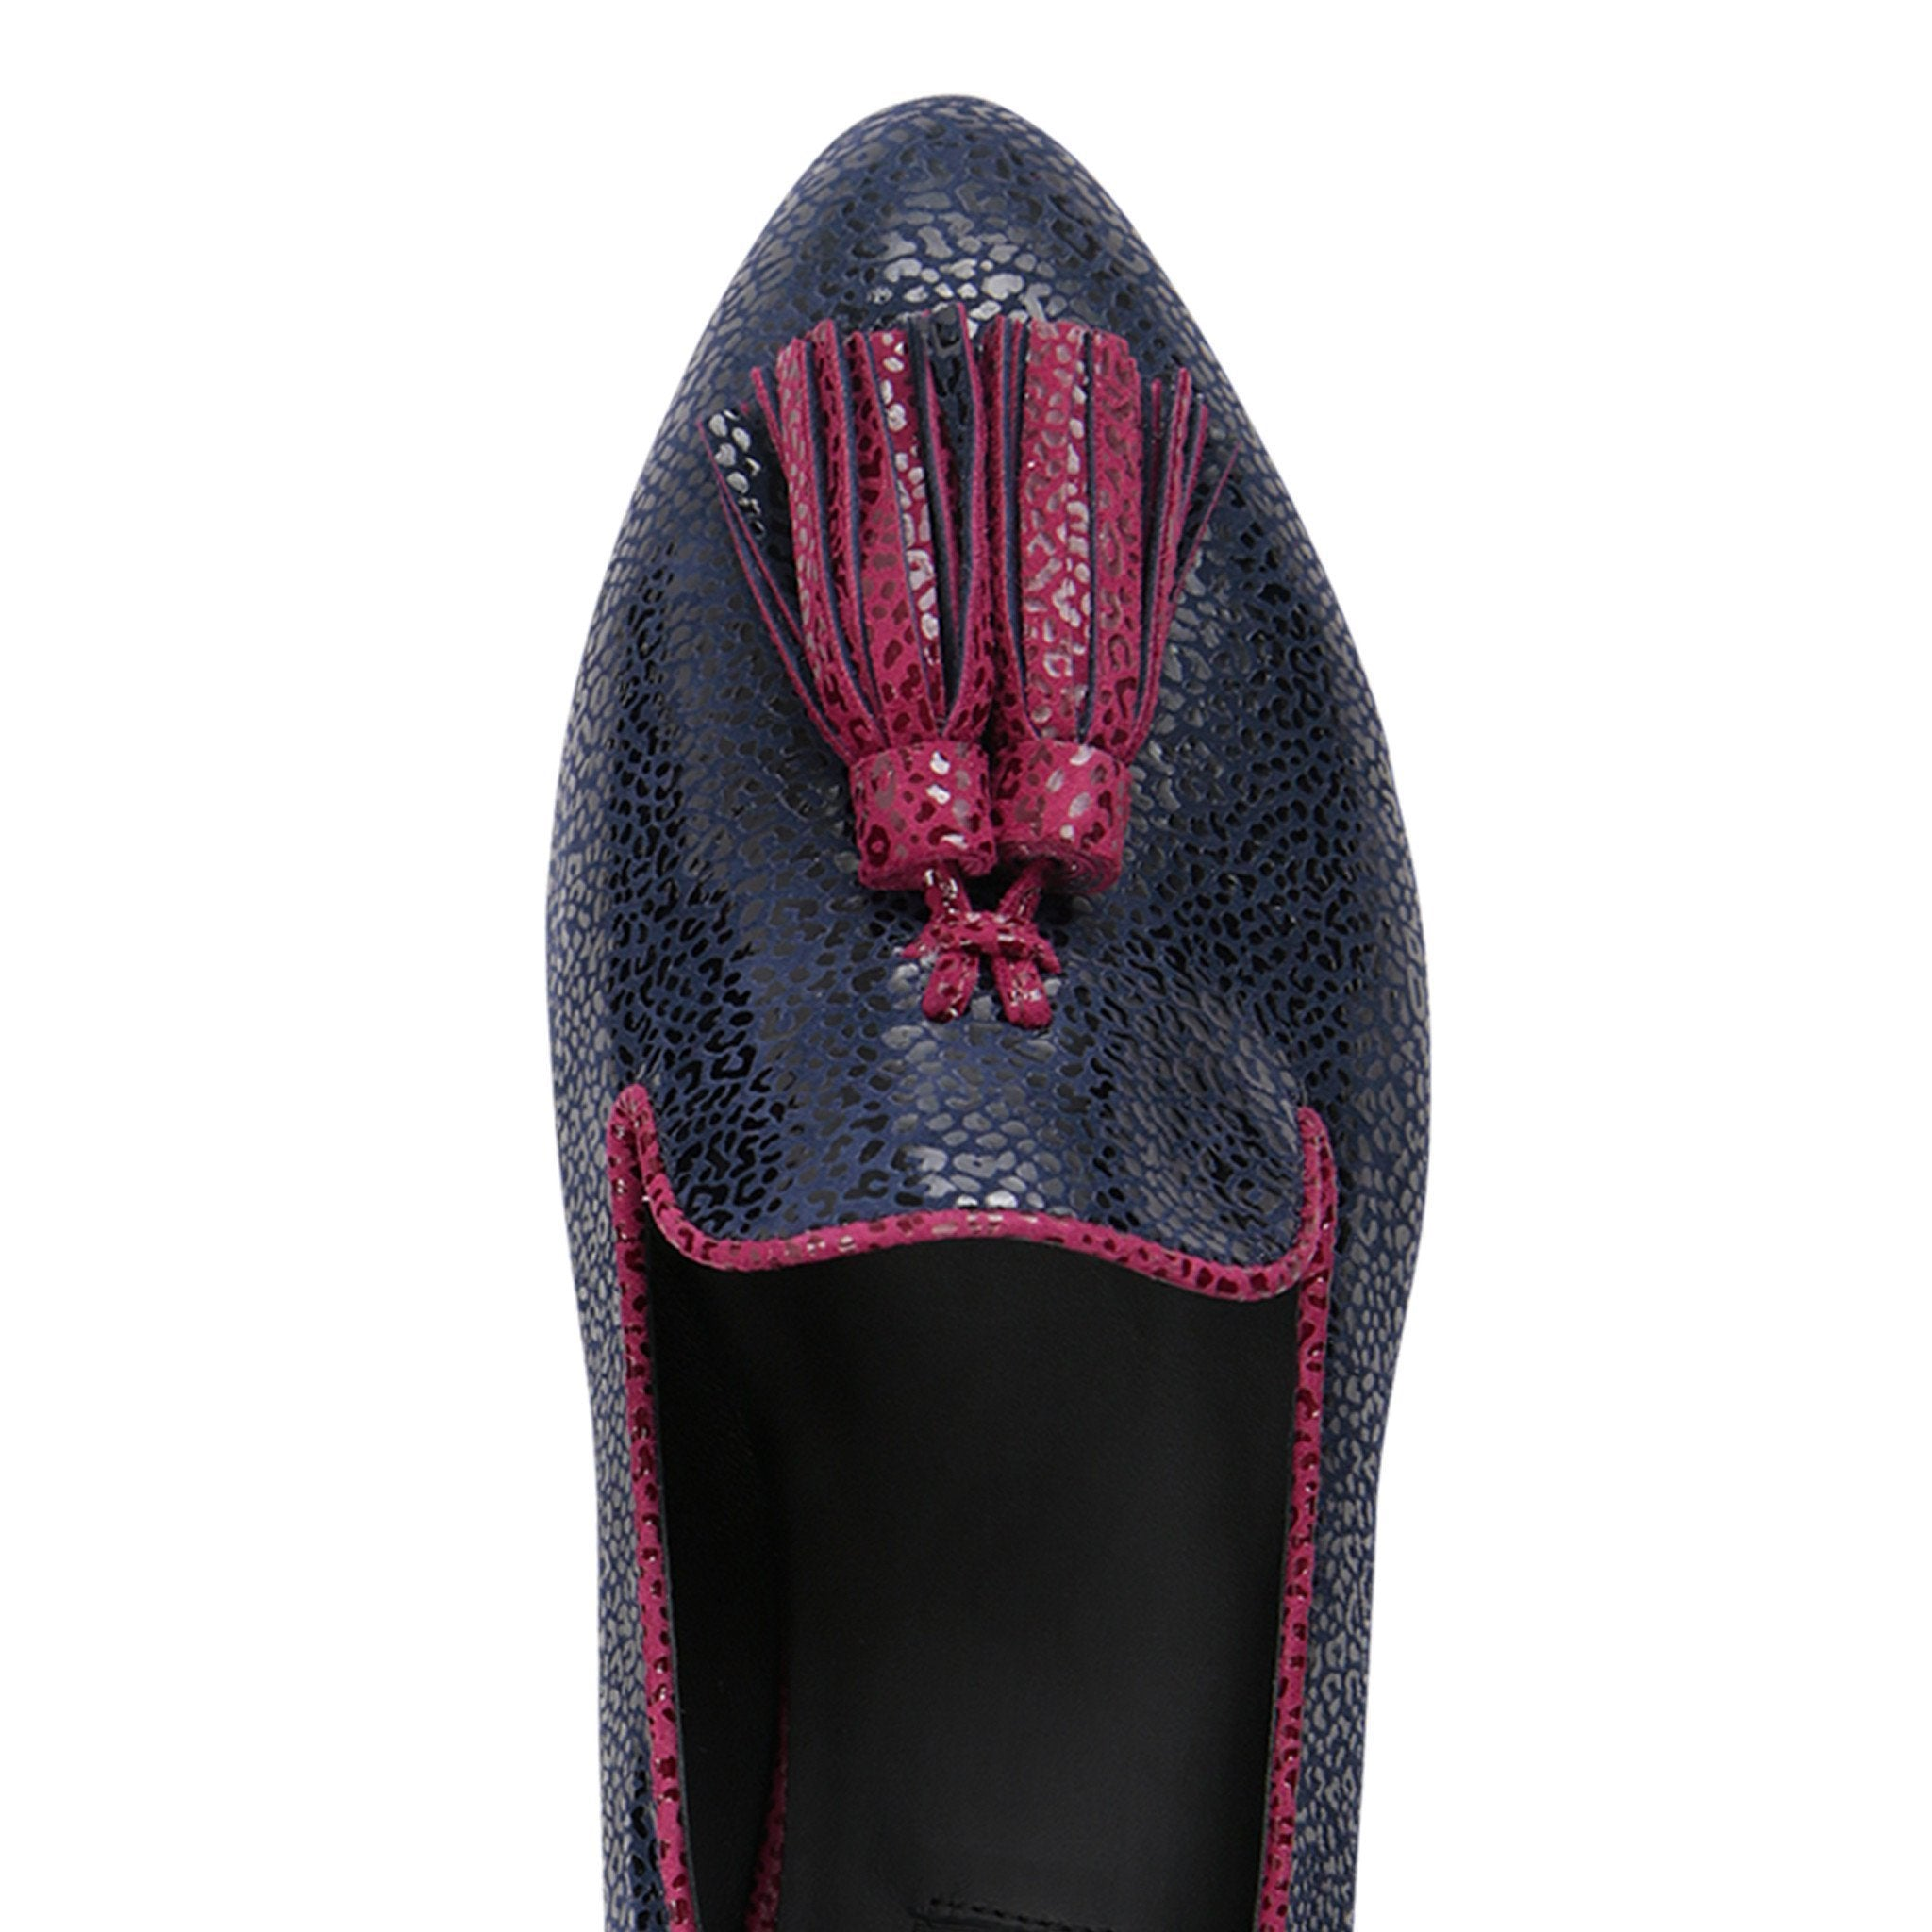 PARMA - Savannah Midnight + Bordeaux, VIAJIYU - Women's Hand Made Sustainable Luxury Shoes. Made in Italy. Made to Order.